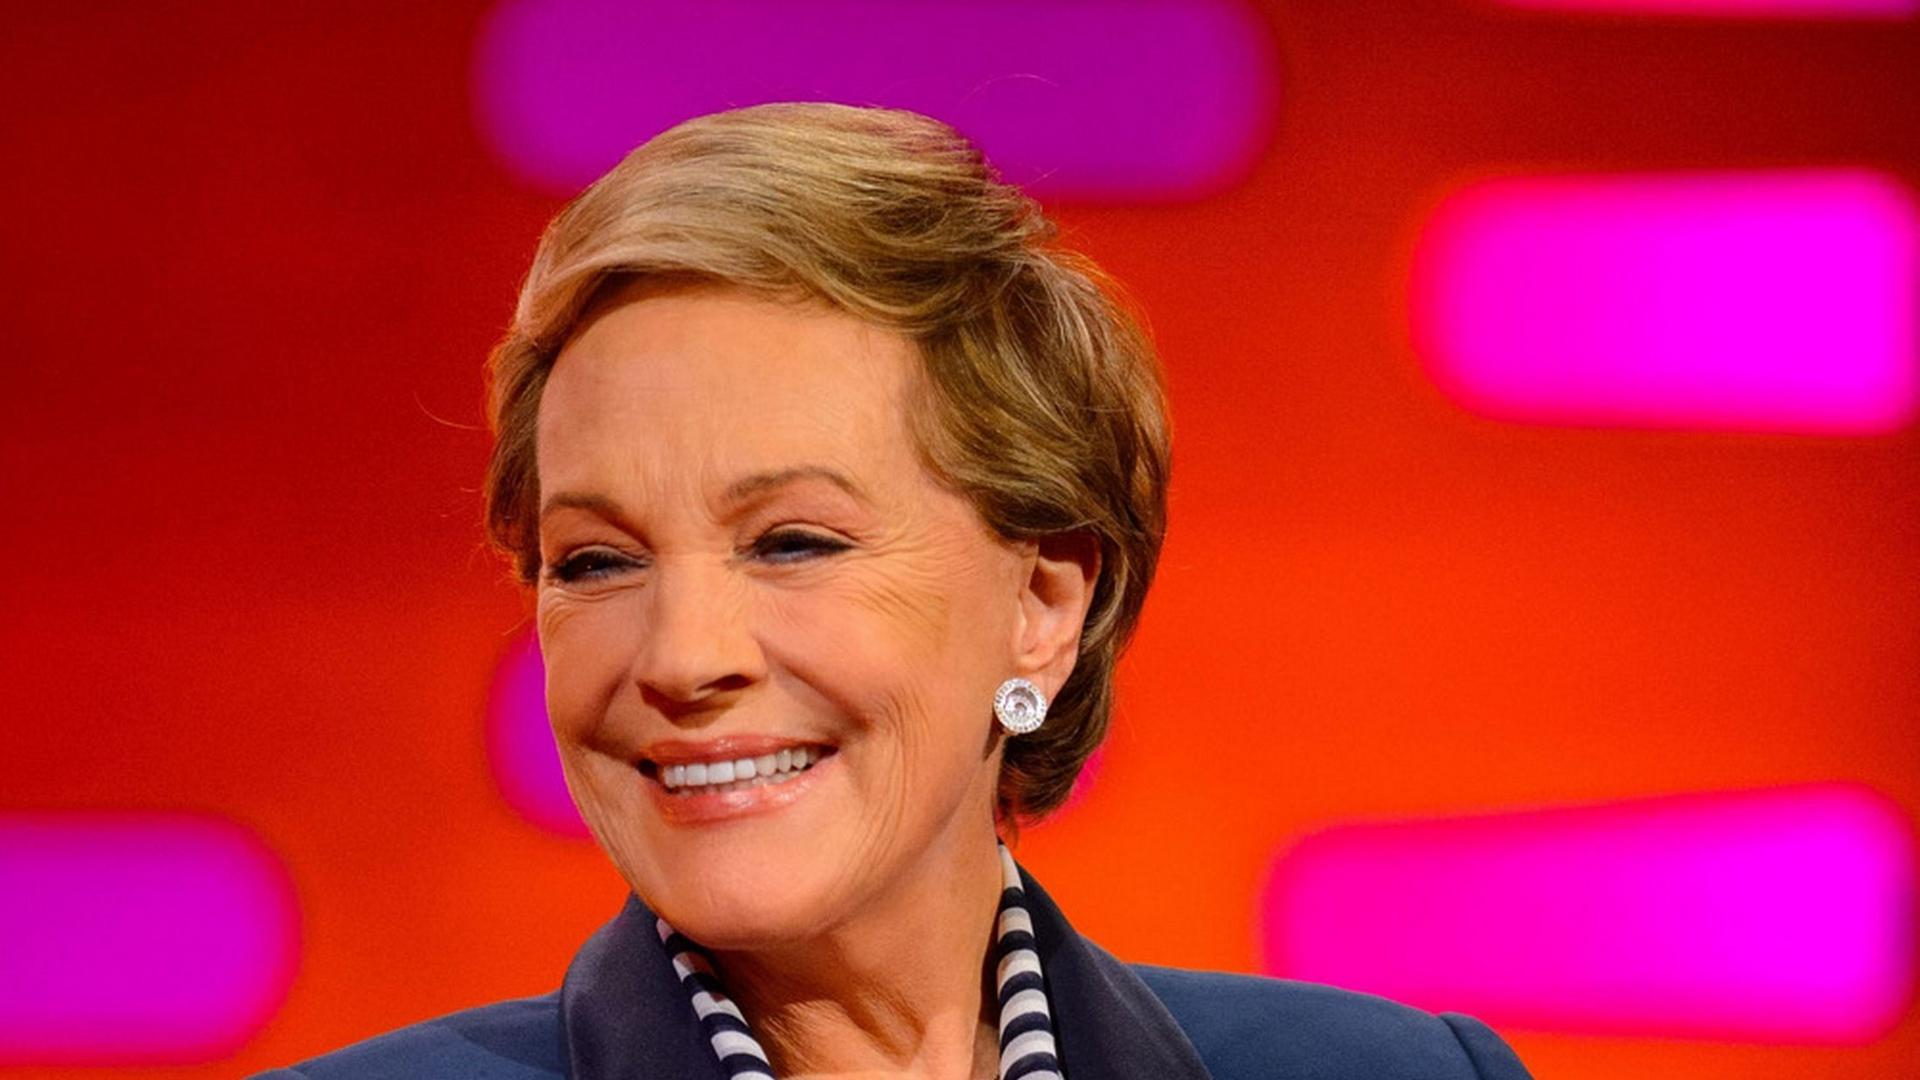 Download wallpapers 1920x1080 julie andrews, actress, celebrity full